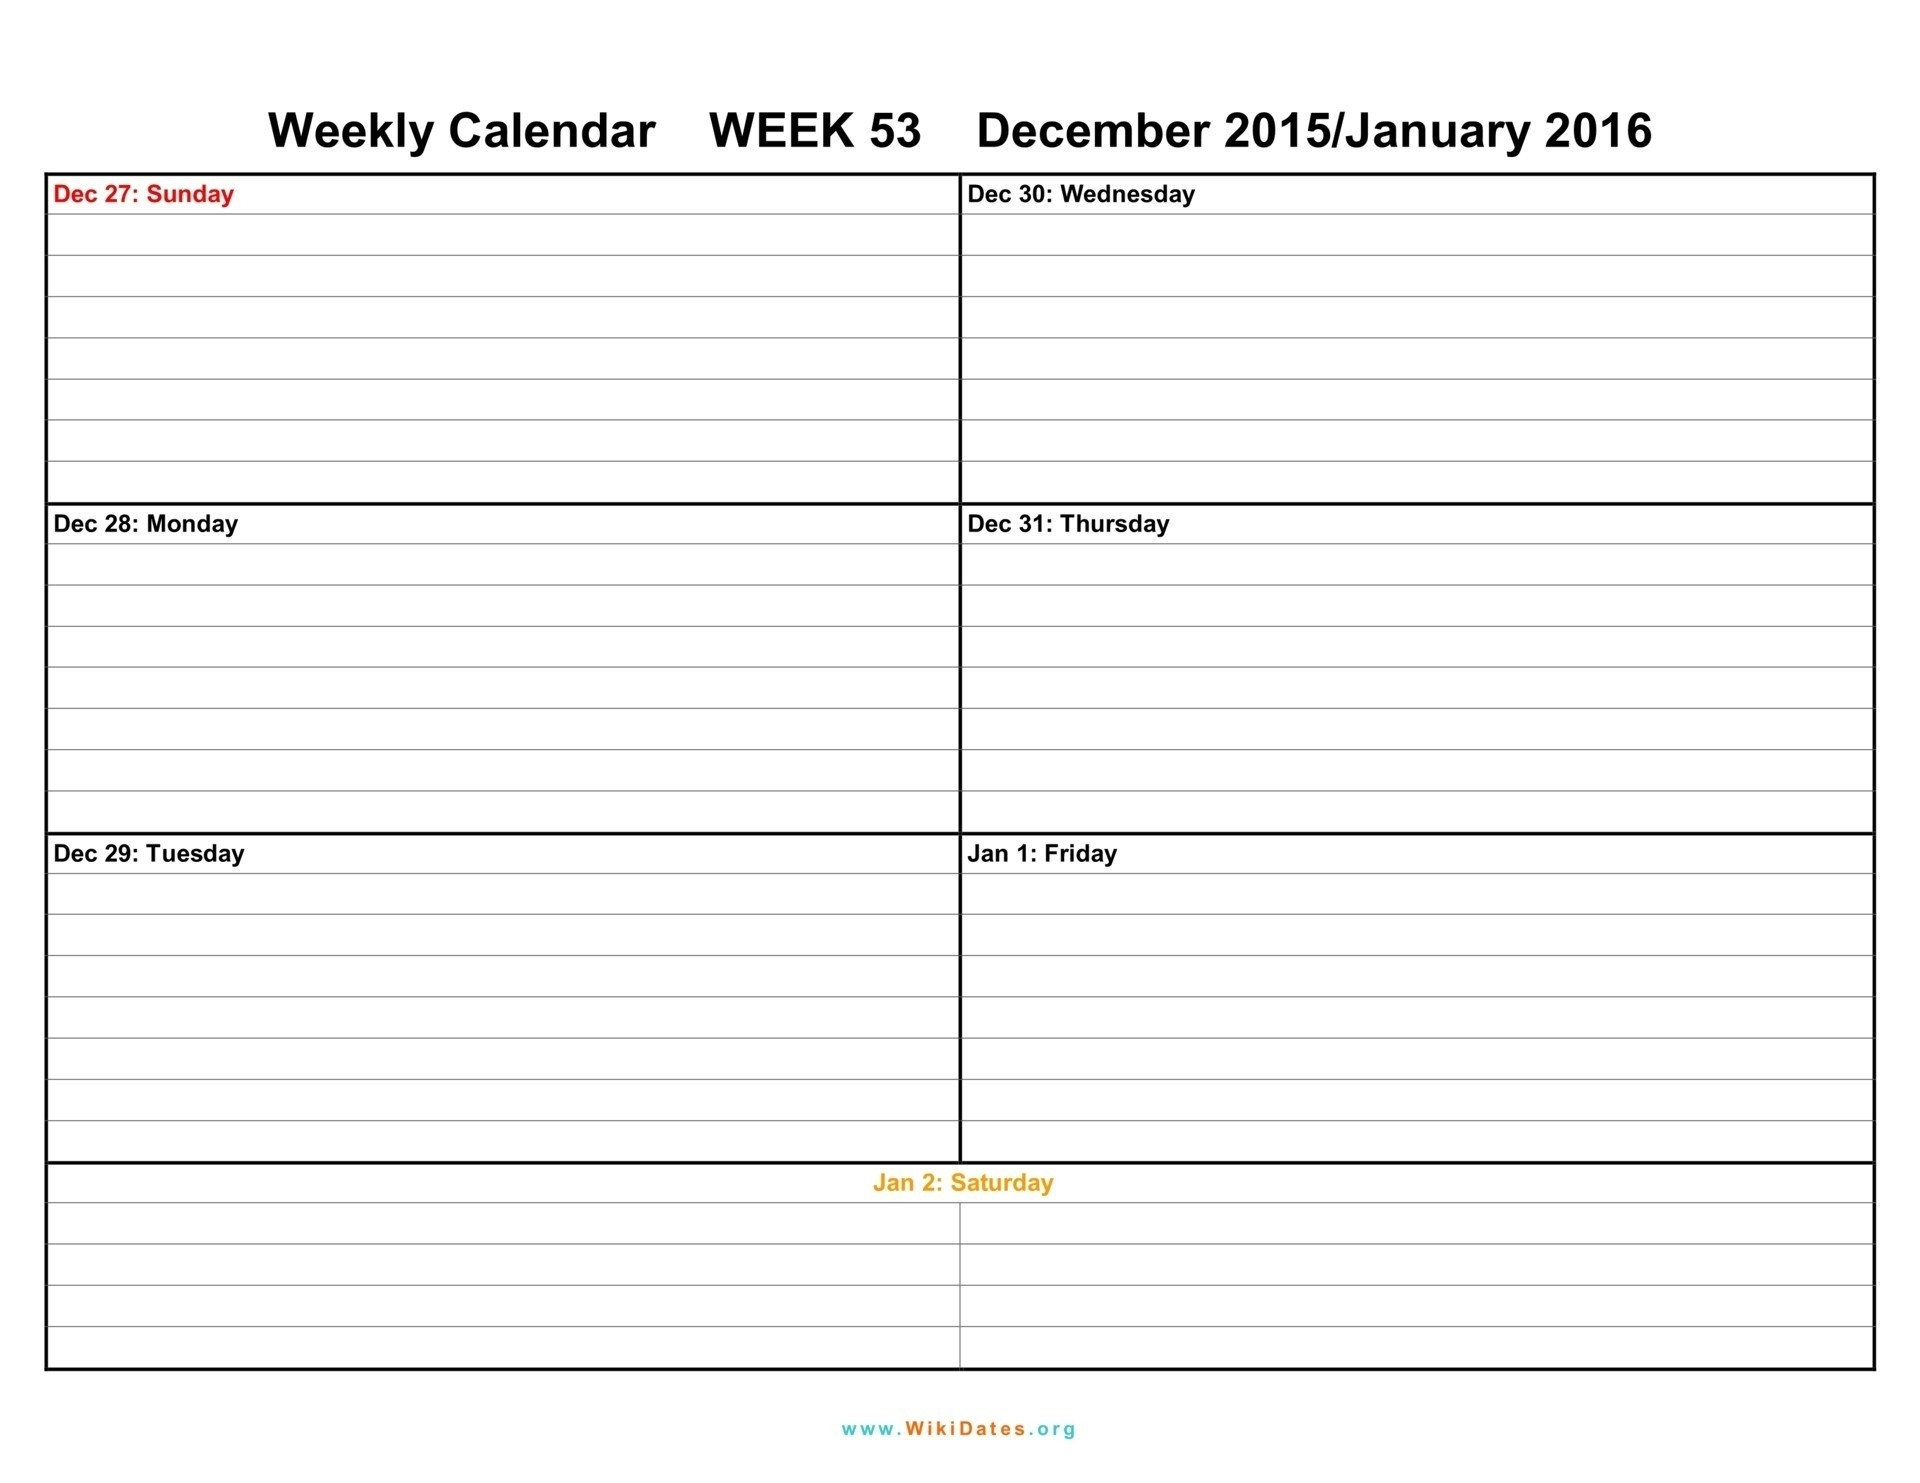 Printable Weekly Calendar Two Week Template Weeks Blank December inside Blank December Weekly Calander